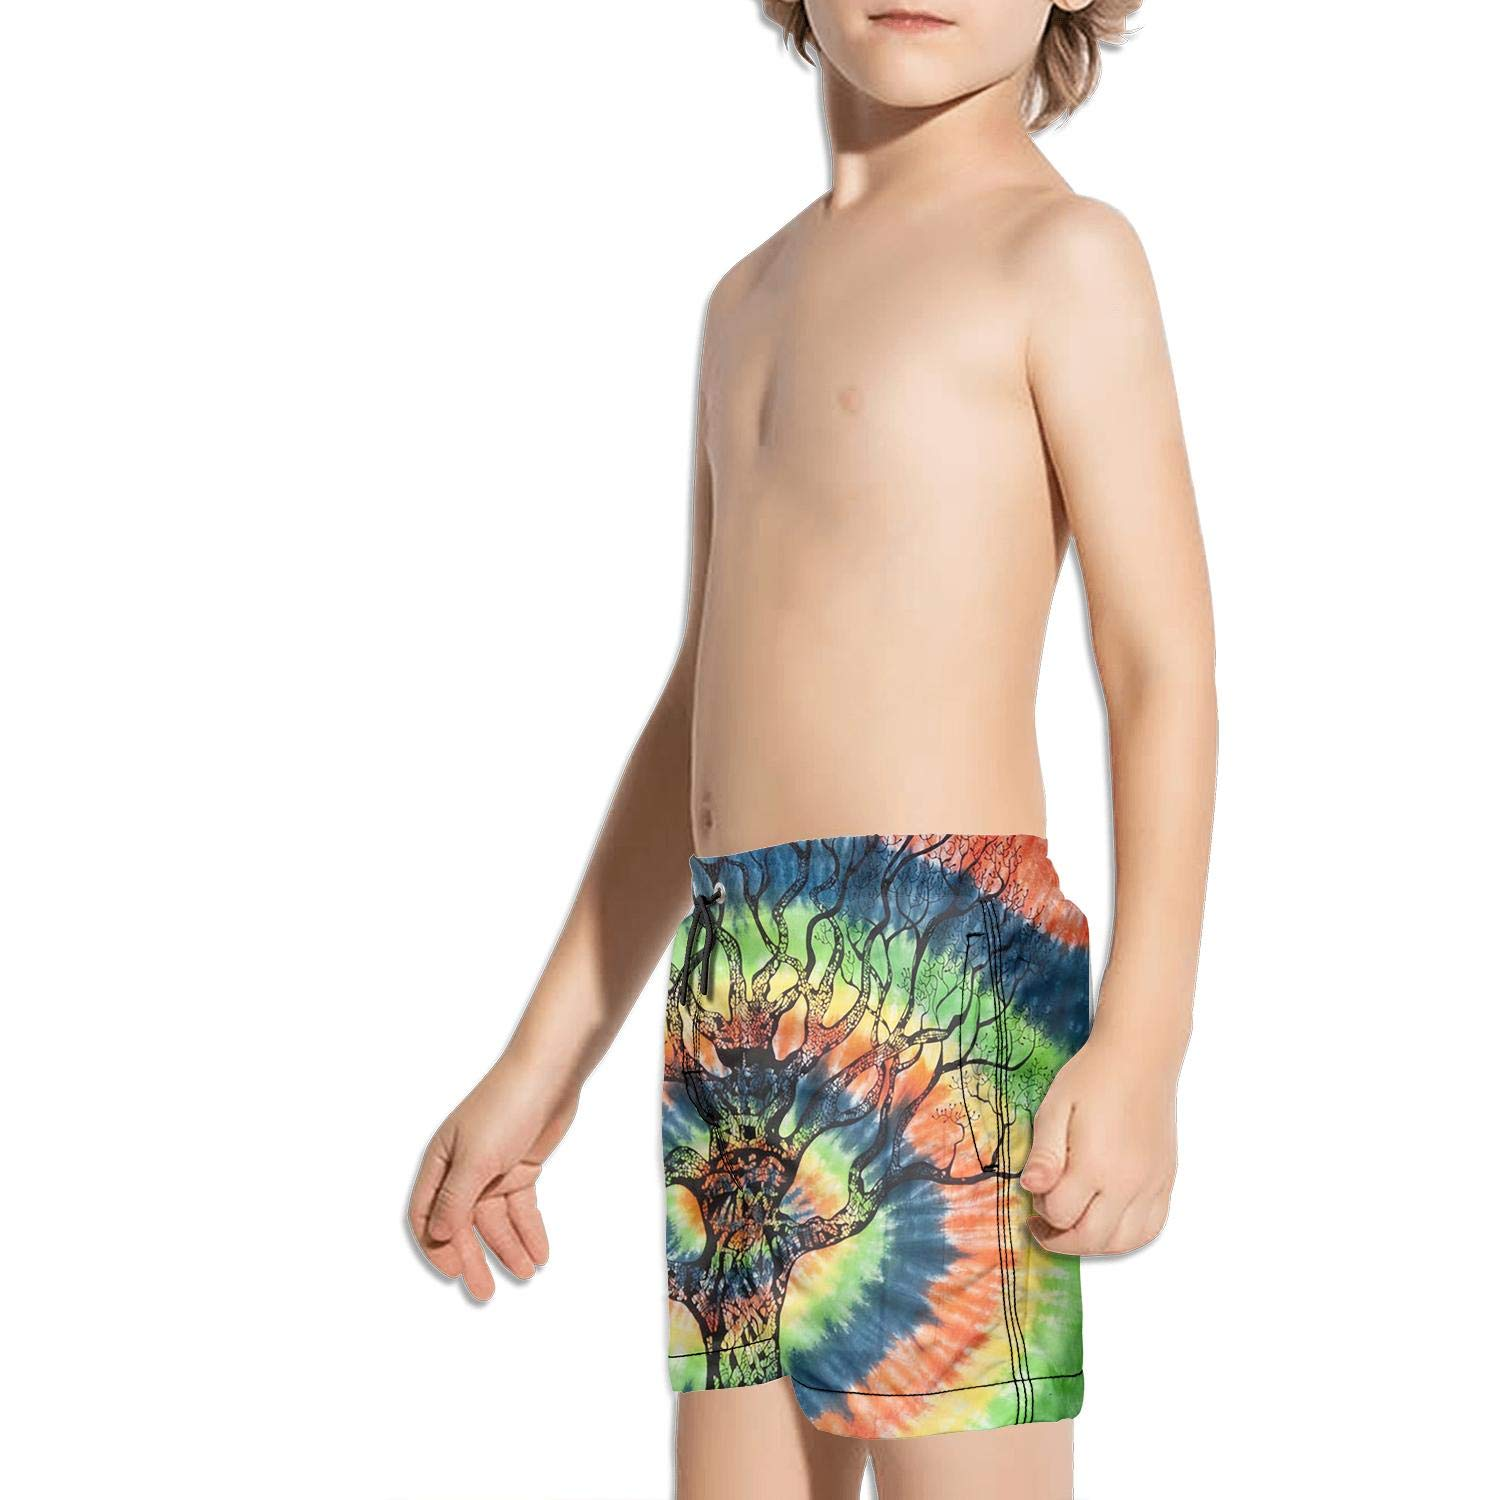 FullBo Tie Dye Fabric Designs Colorful Little Boys Short Swim Trunks Quick Dry Beach Shorts